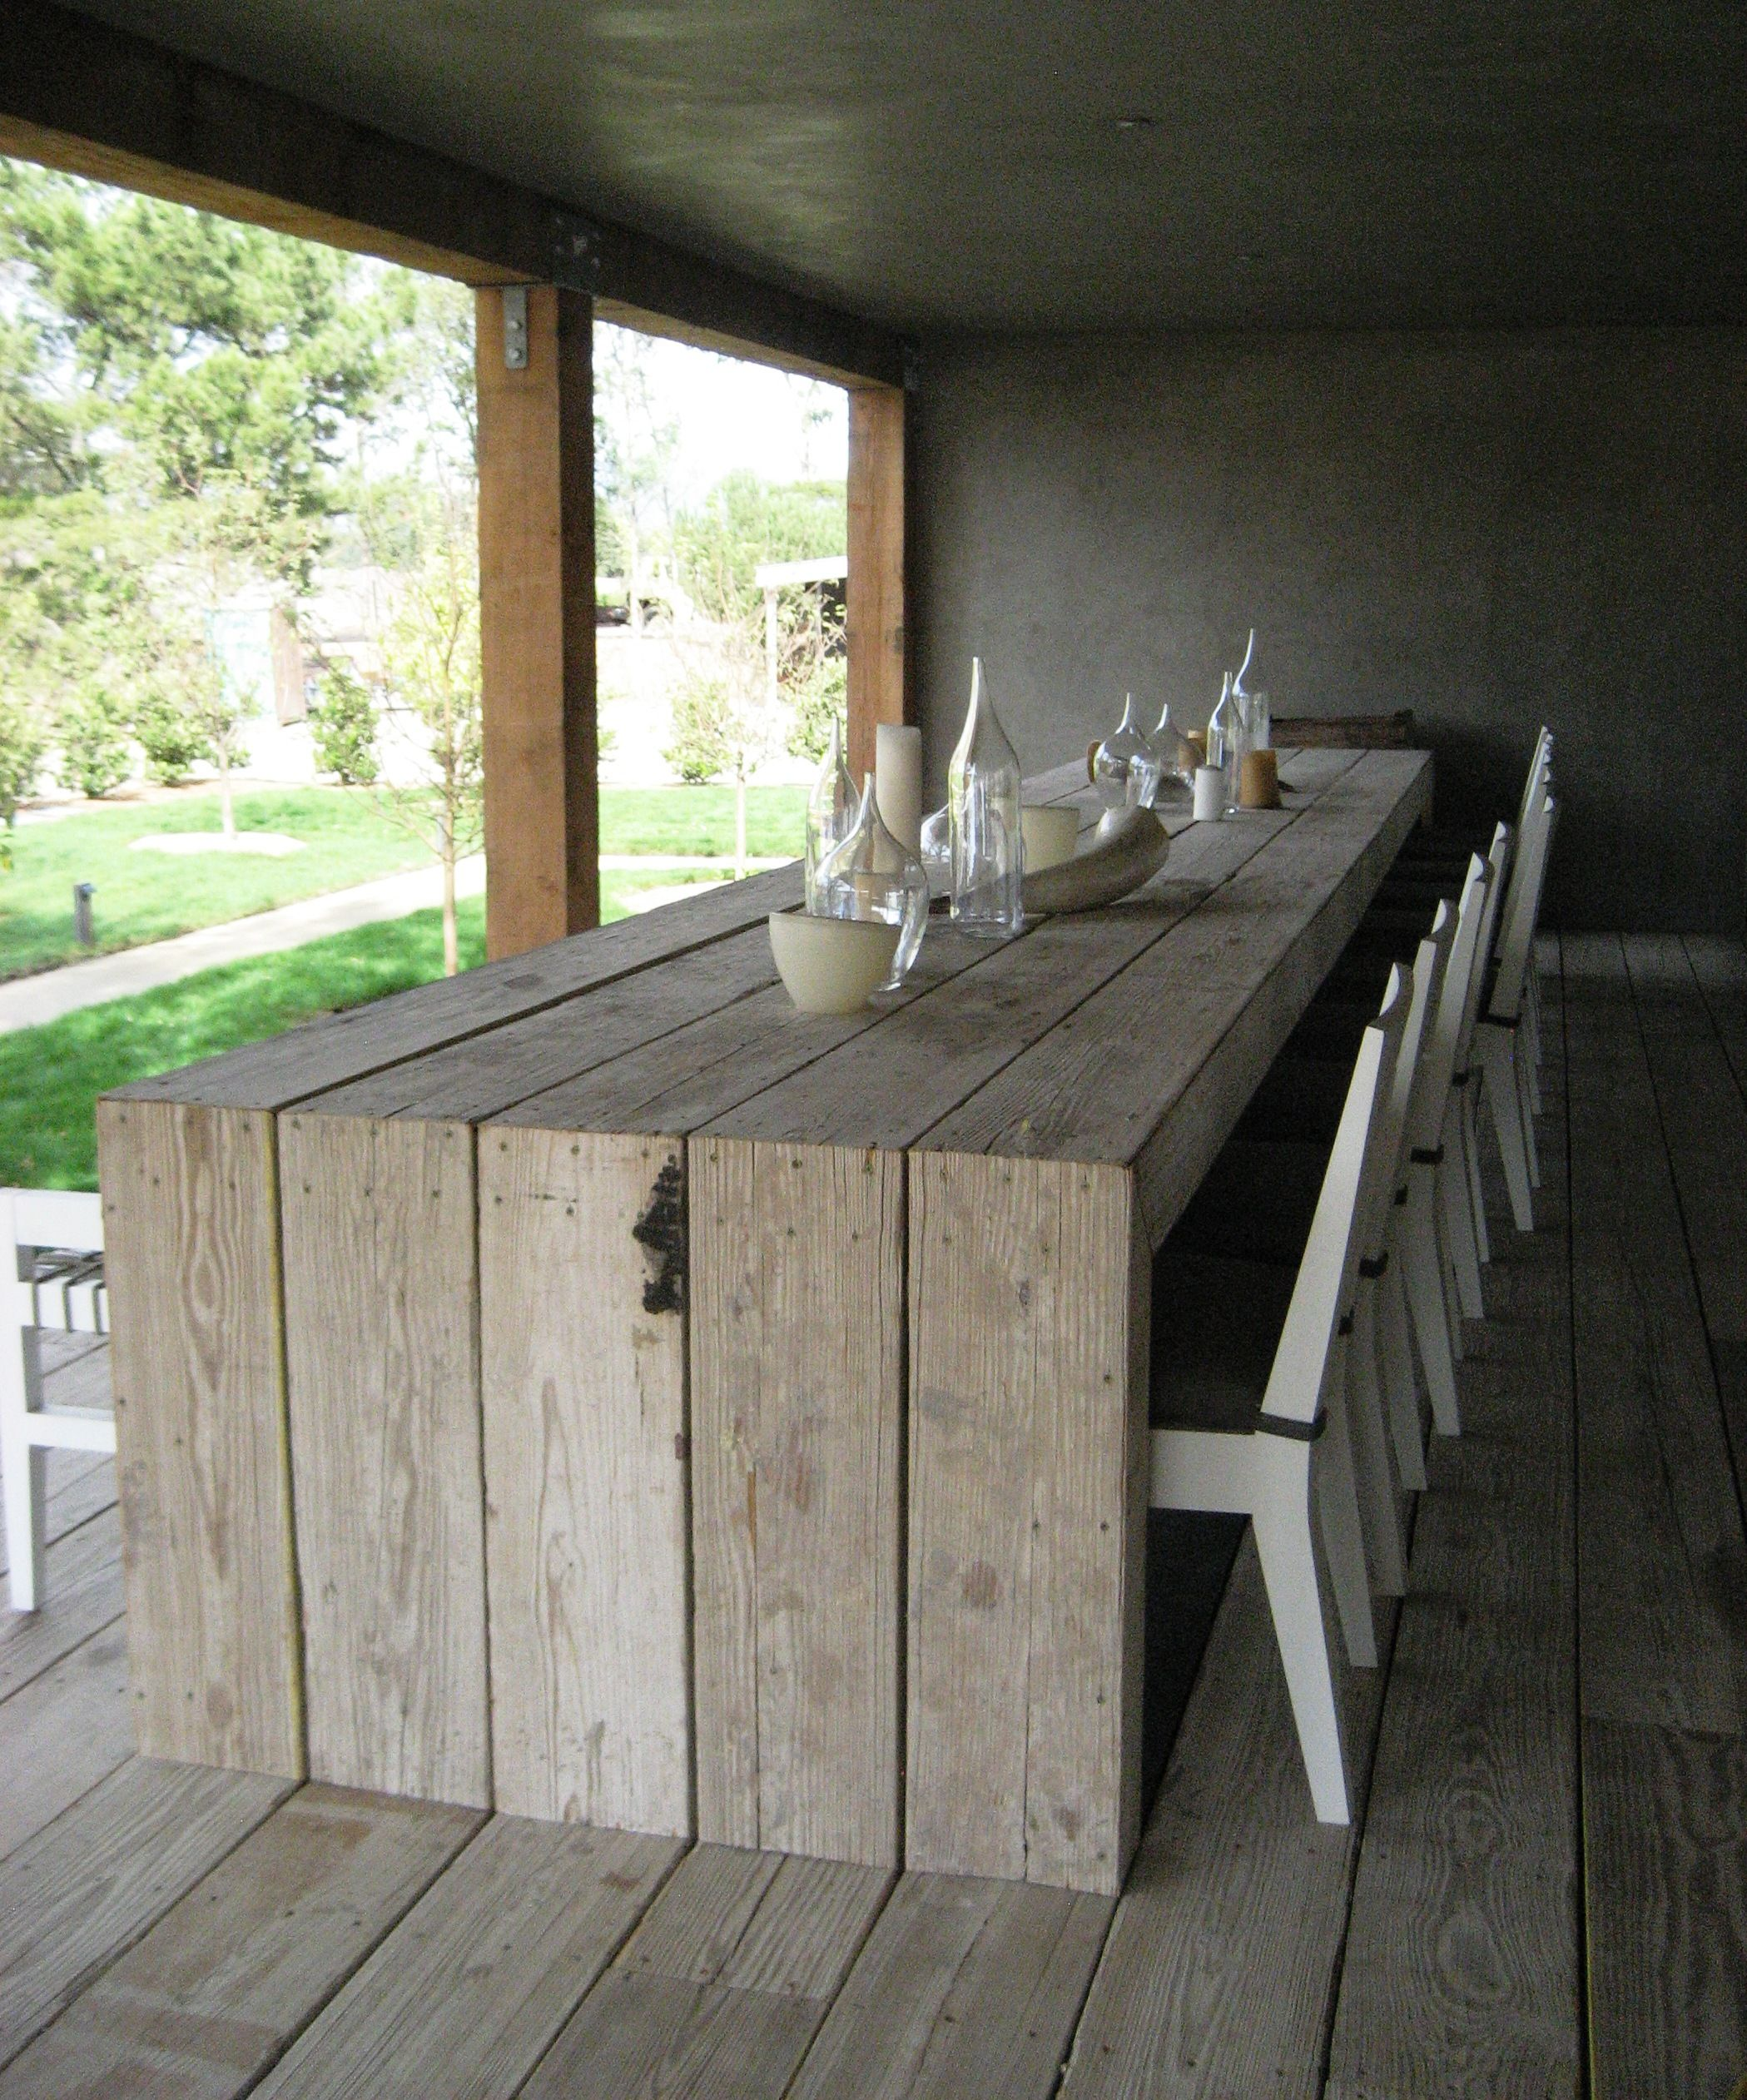 Garden Furniture Made From Scaffolding Planks the table is made from a pallet - buy the white plastic chairs and